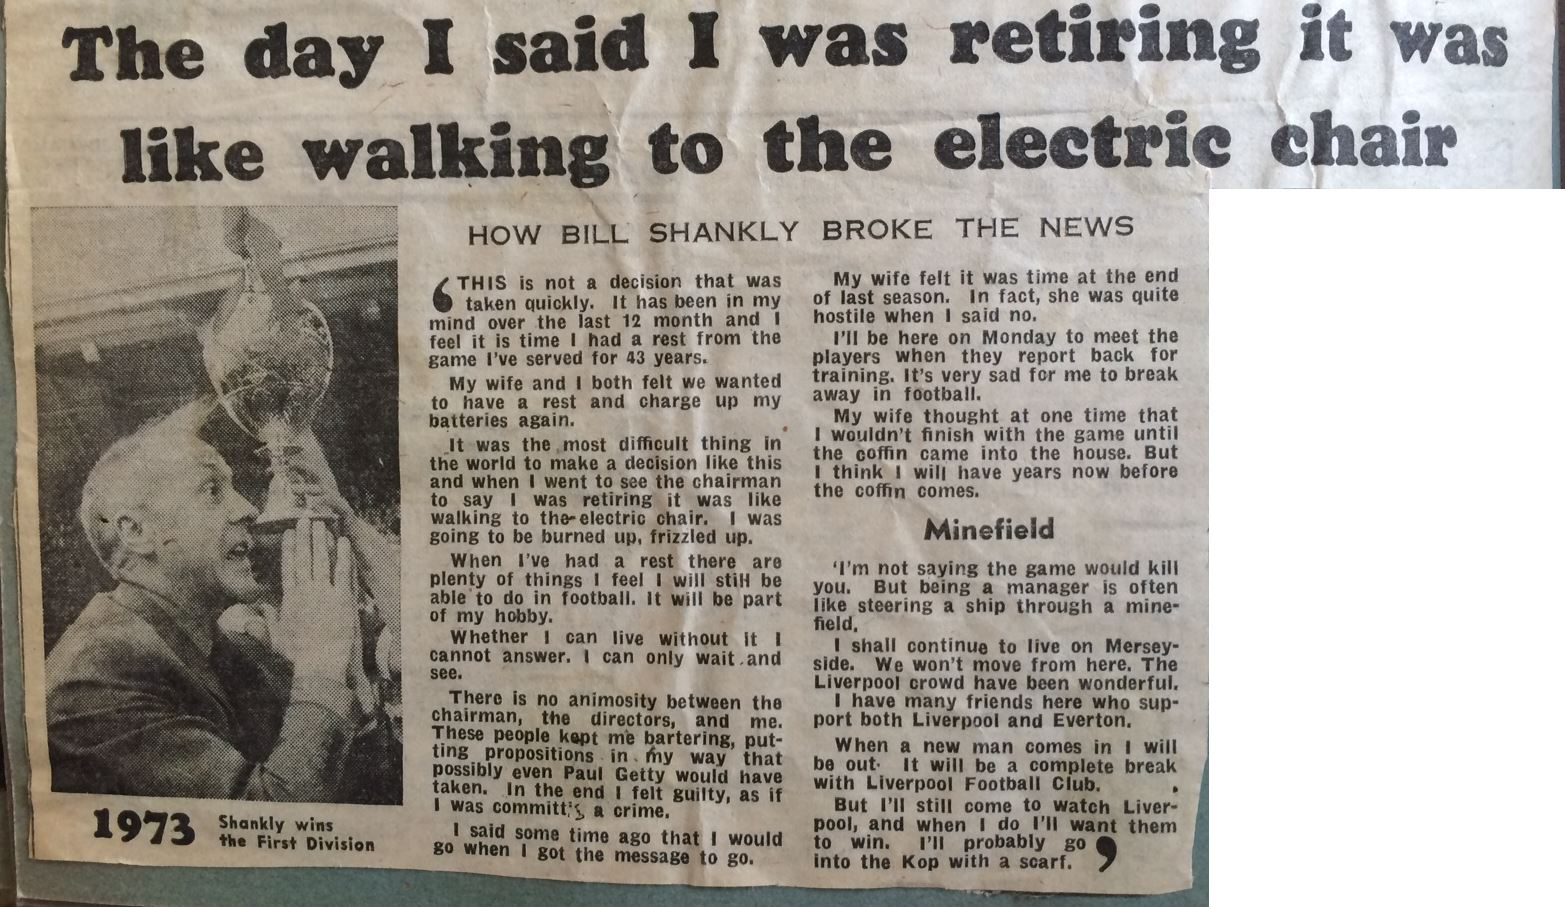 Like walking to the electric chair - Daily Mail 13 July 1974